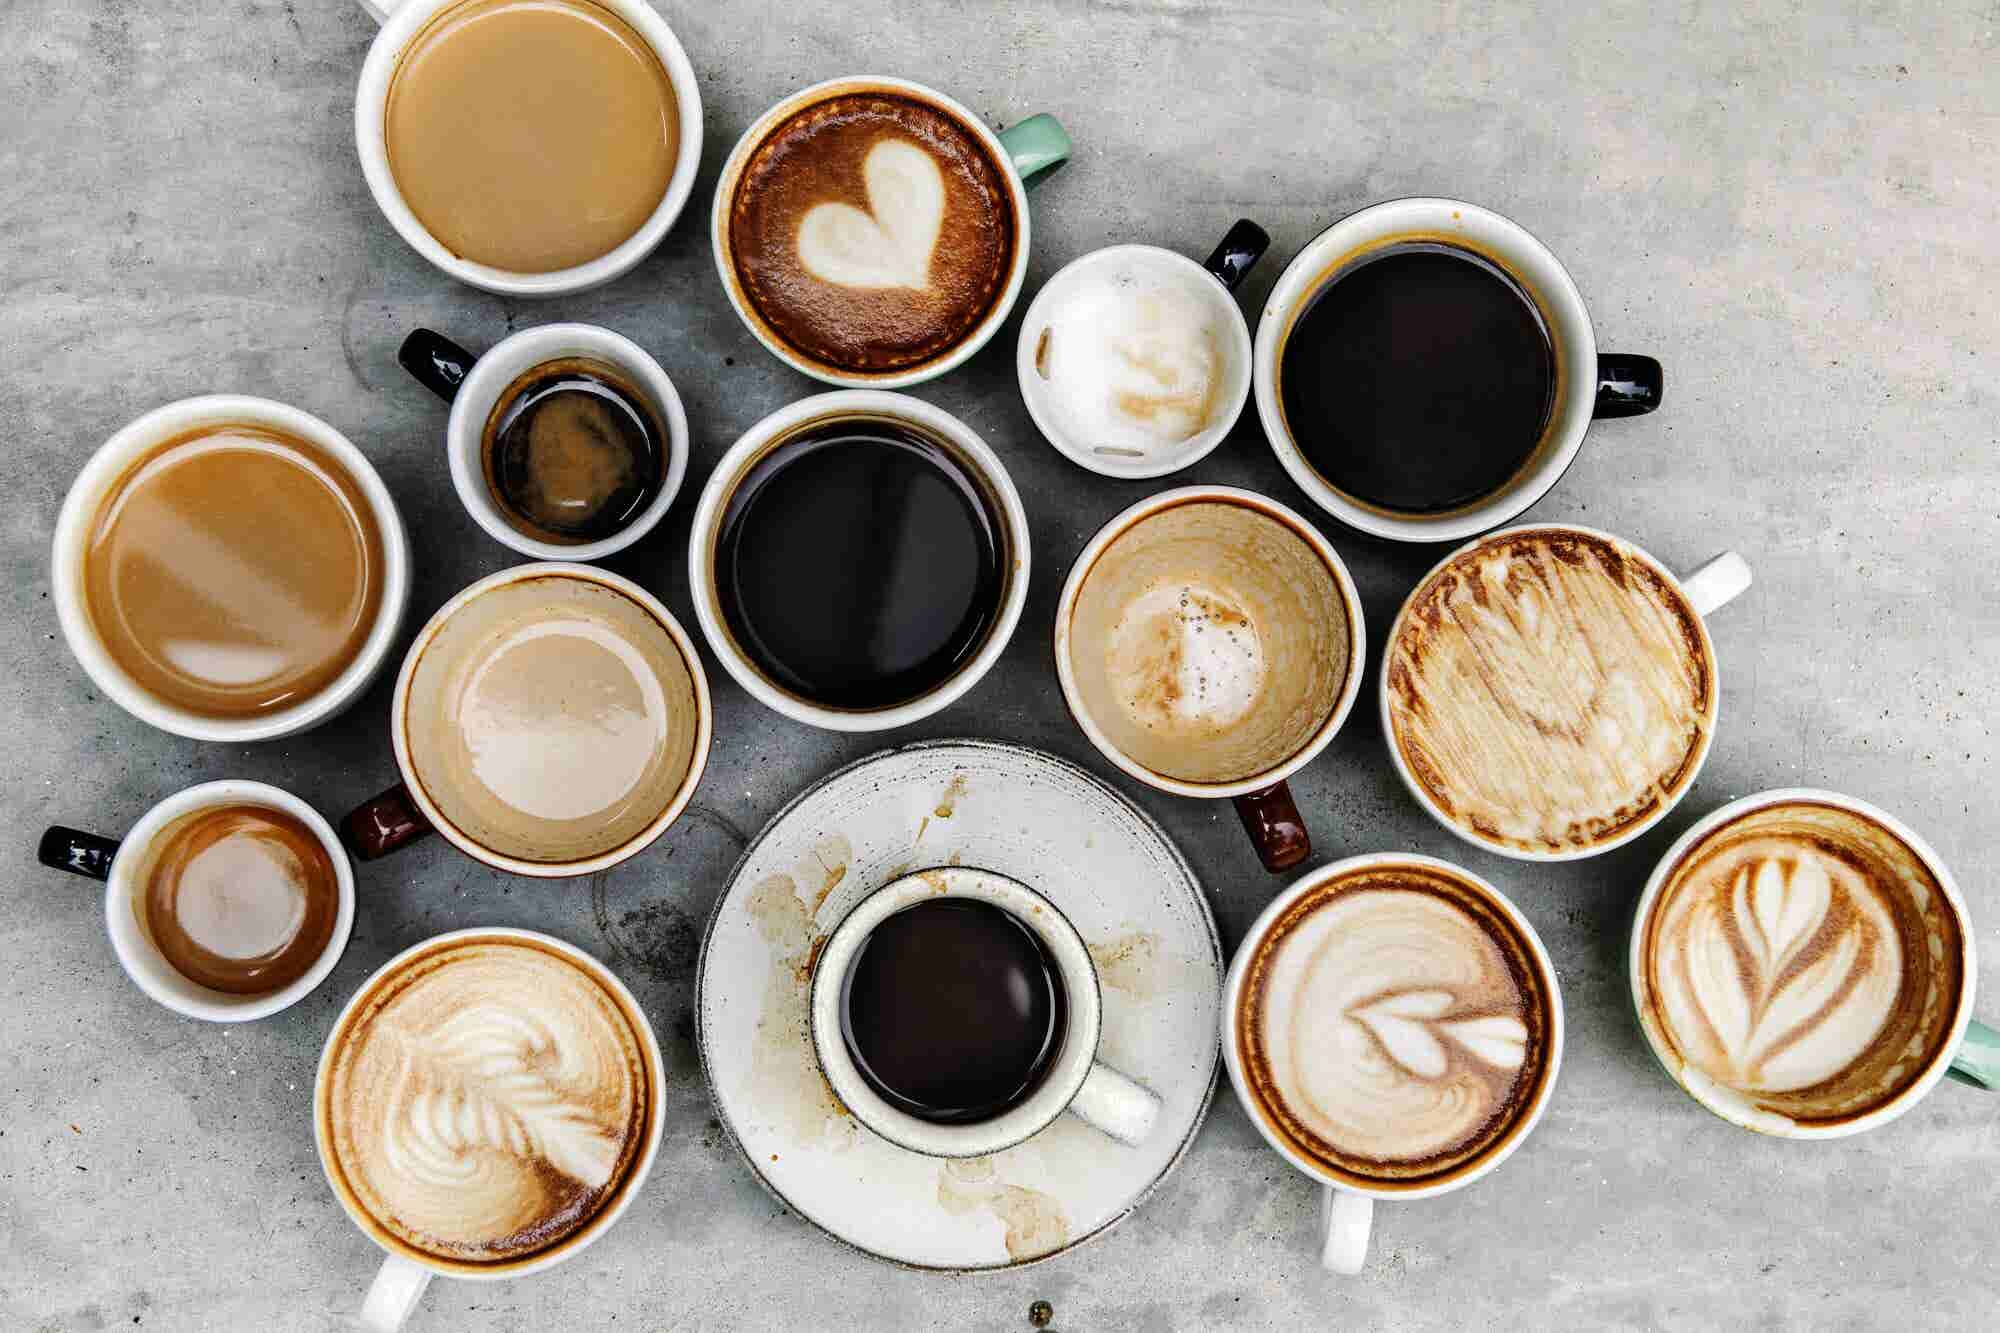 U.S. Coffee Consumption by the Numbers (Infographic)